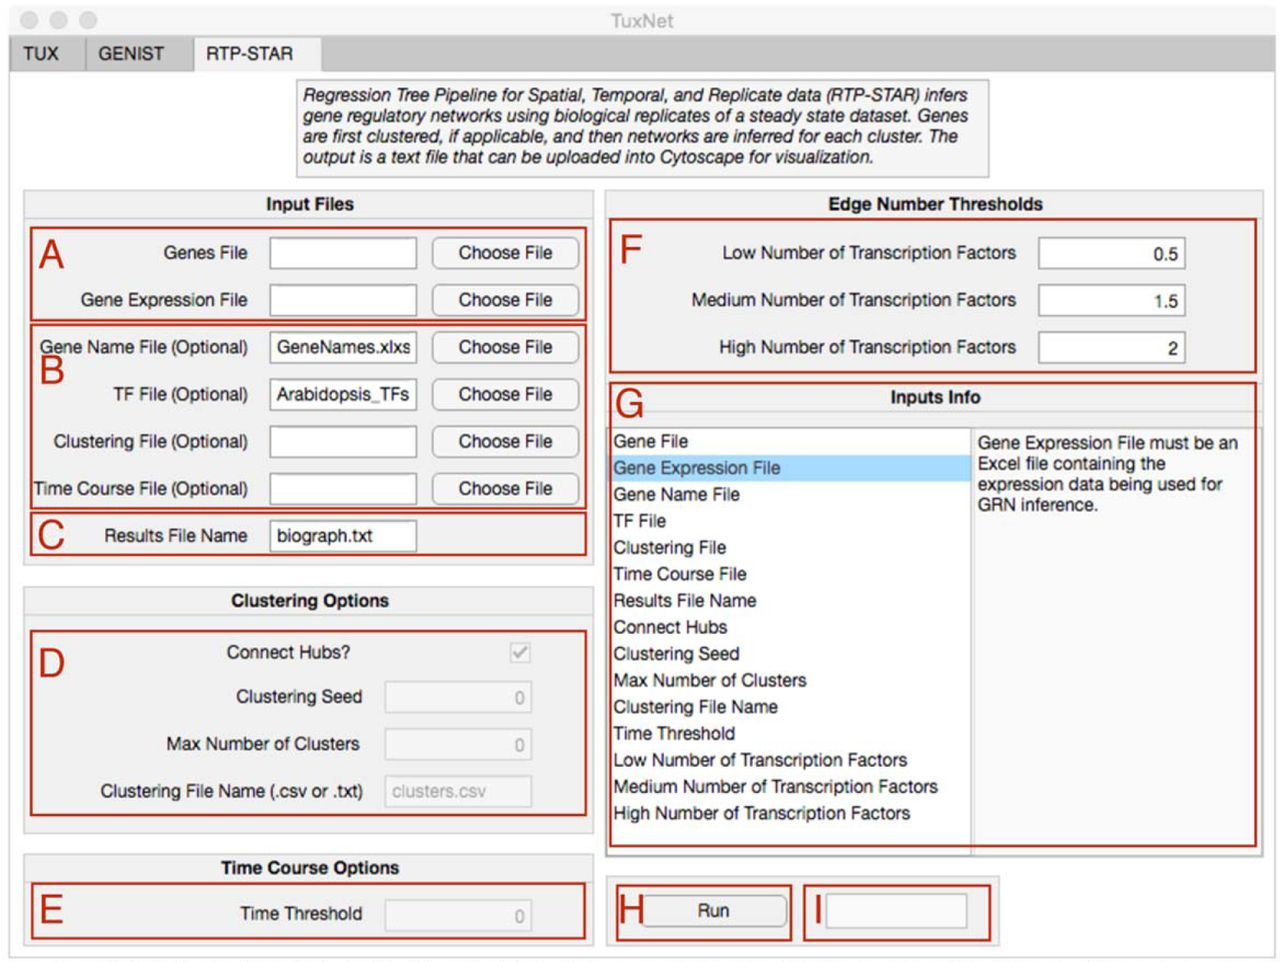 TuxNet: A simple interface to process RNA sequencing data and infer